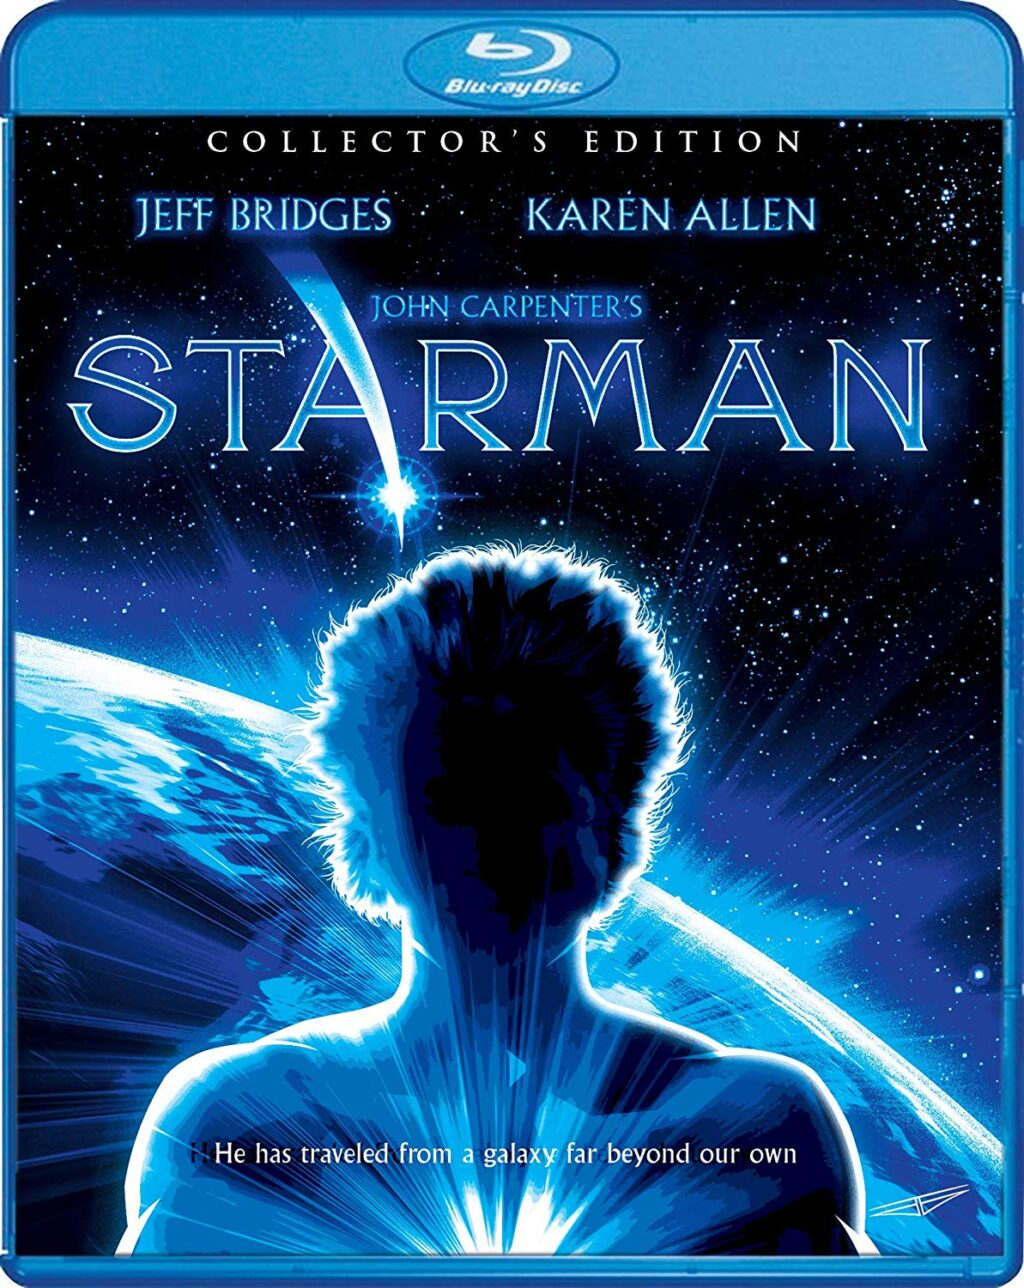 STARMAN Blu-ray Review - An Extraordinary Adventure in America's Backyard